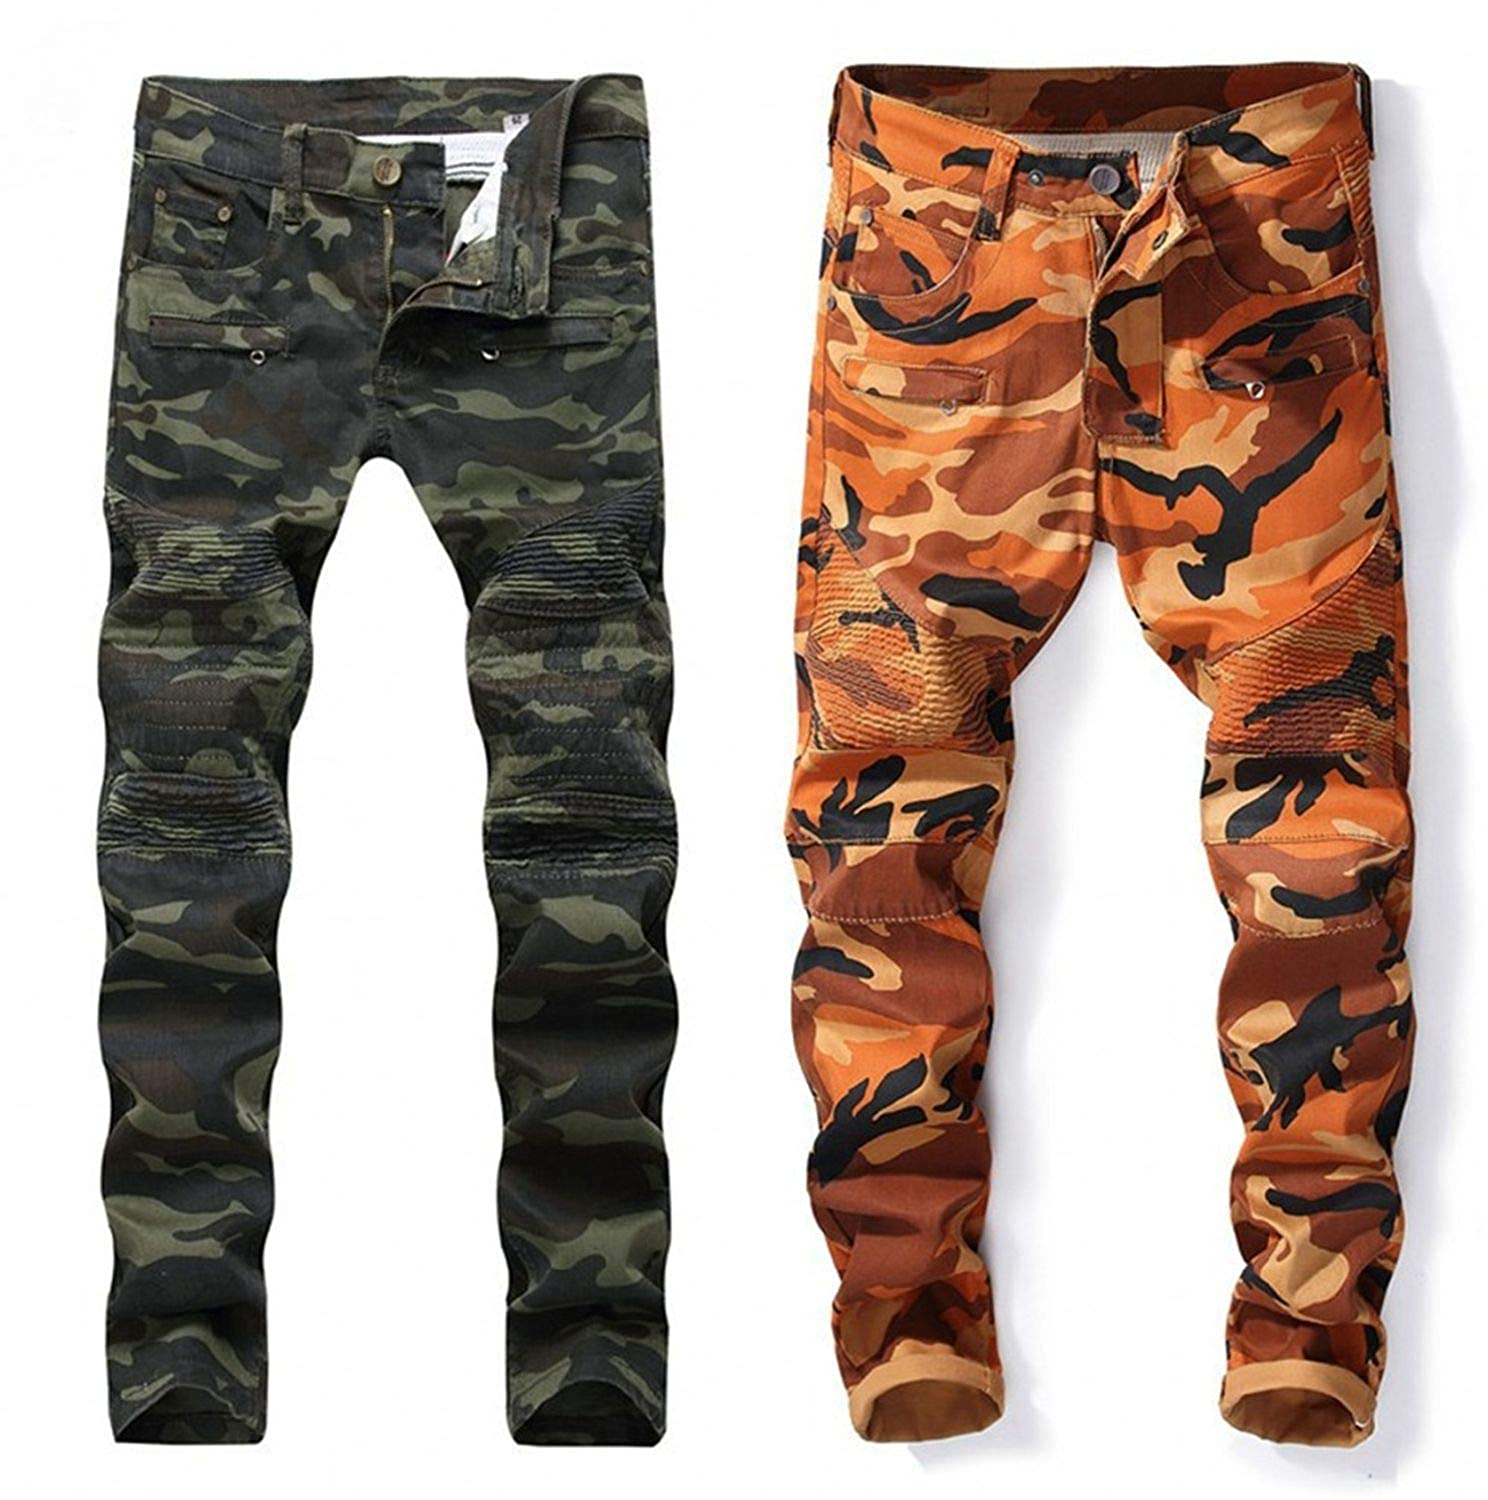 Frozac New Mens Jeans Jeans with Zippers Men Jeans